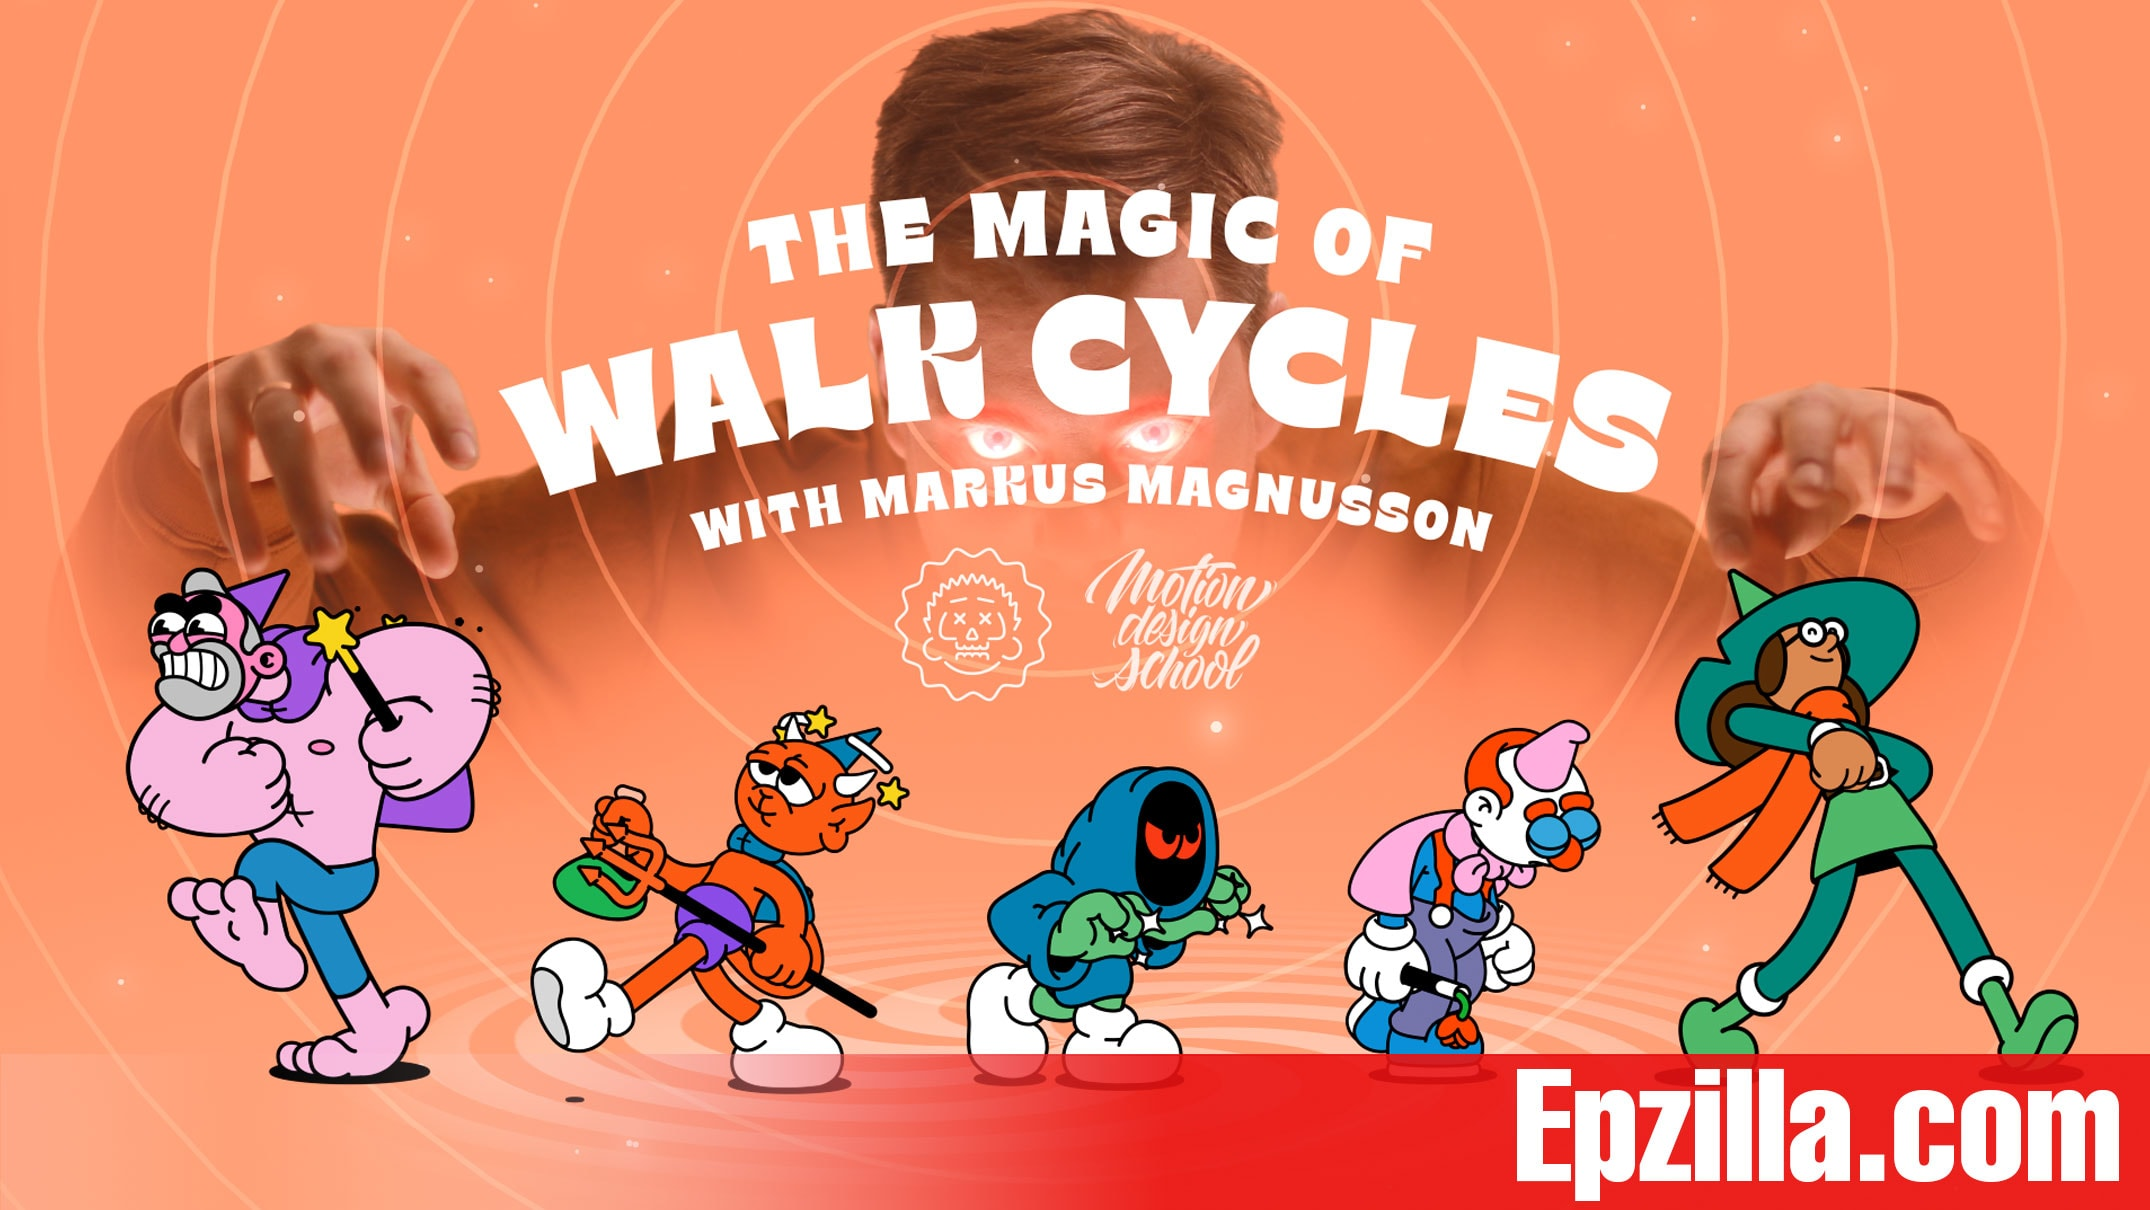 Motion Design School The Magic of Walk Cycles With Markus Magnusson Free Download Epzilla.com